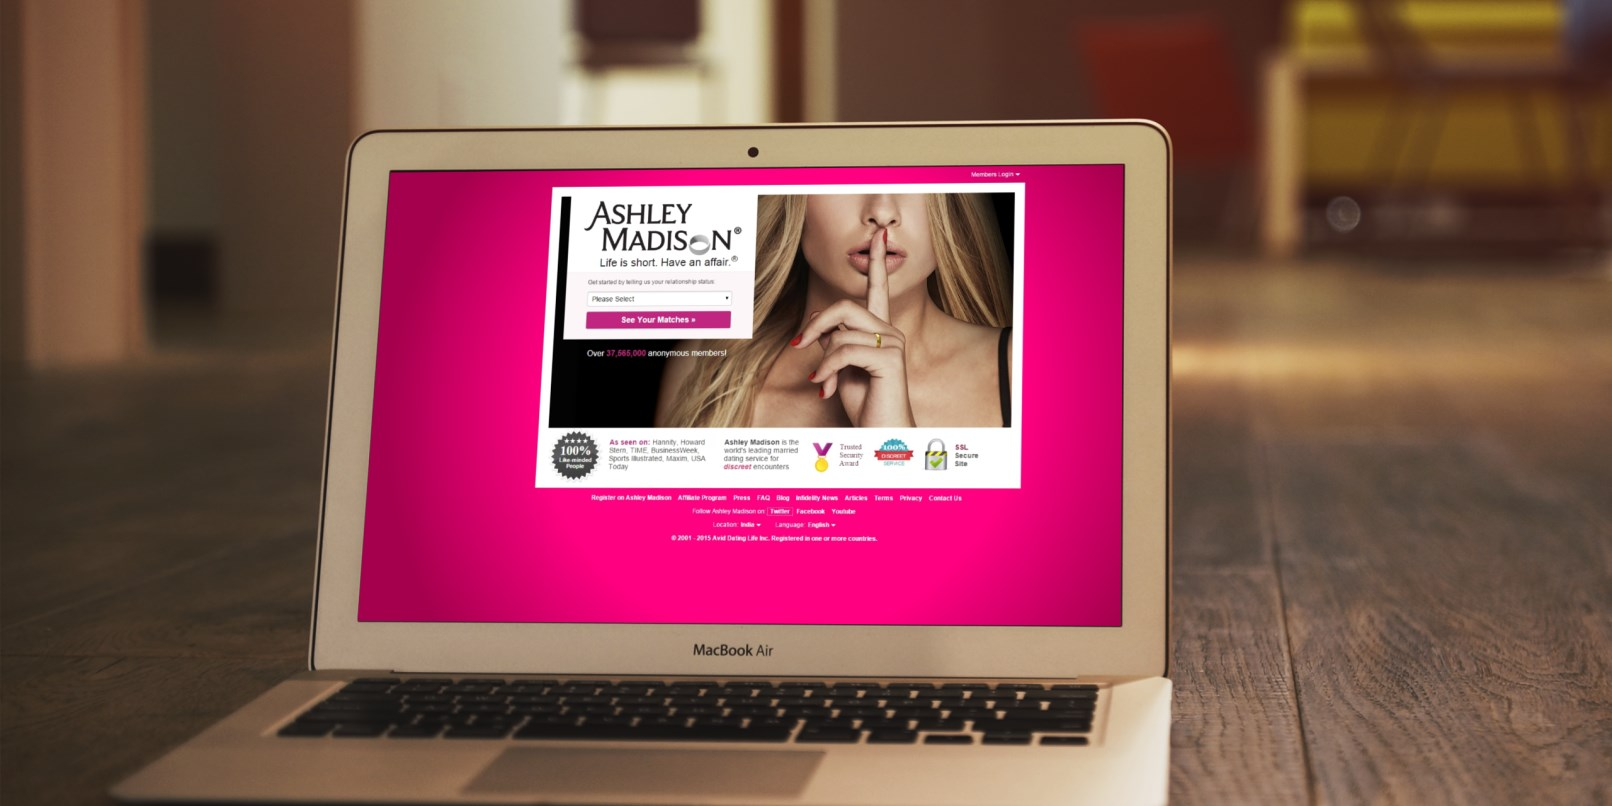 how to get credits on ashley madison